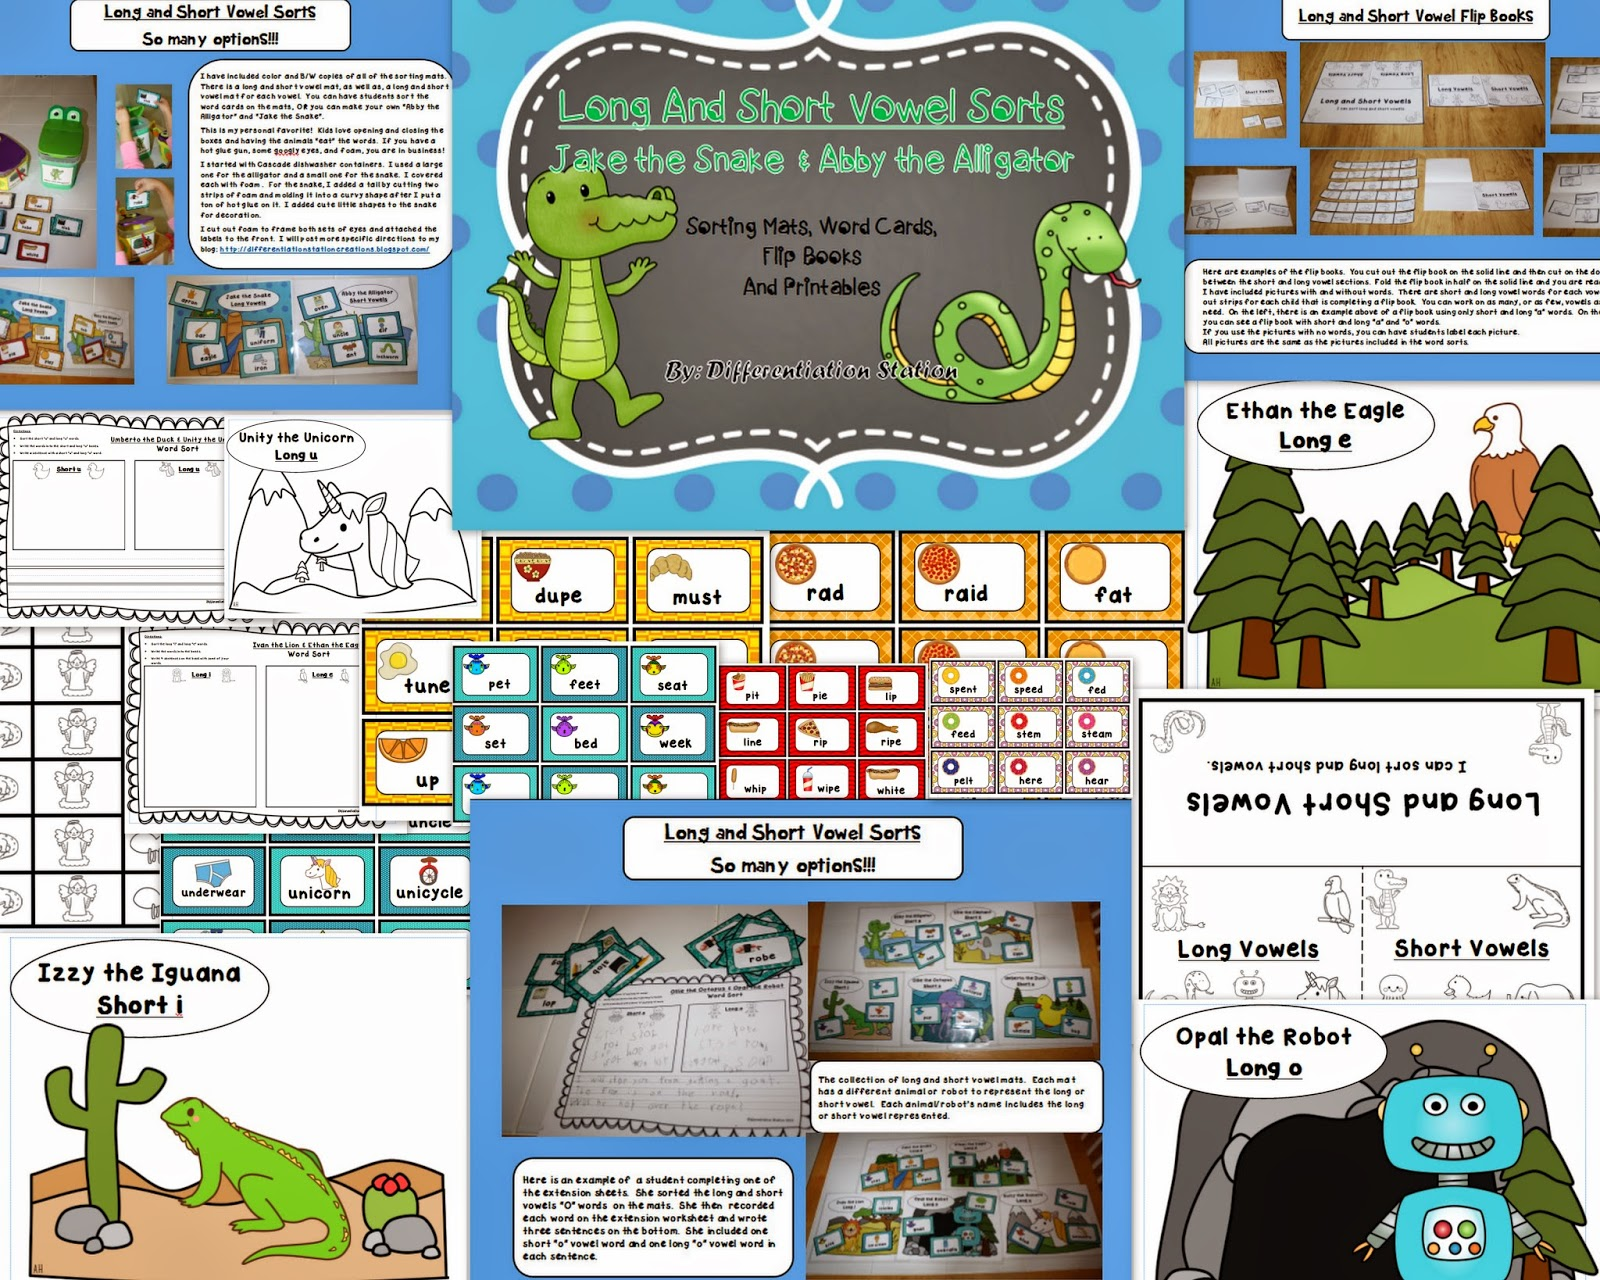 http://www.teacherspayteachers.com/Product/Long-and-Short-Vowel-Sorts-Sorting-Mats-Word-Cards-Flip-Books-and-Printables-1026814